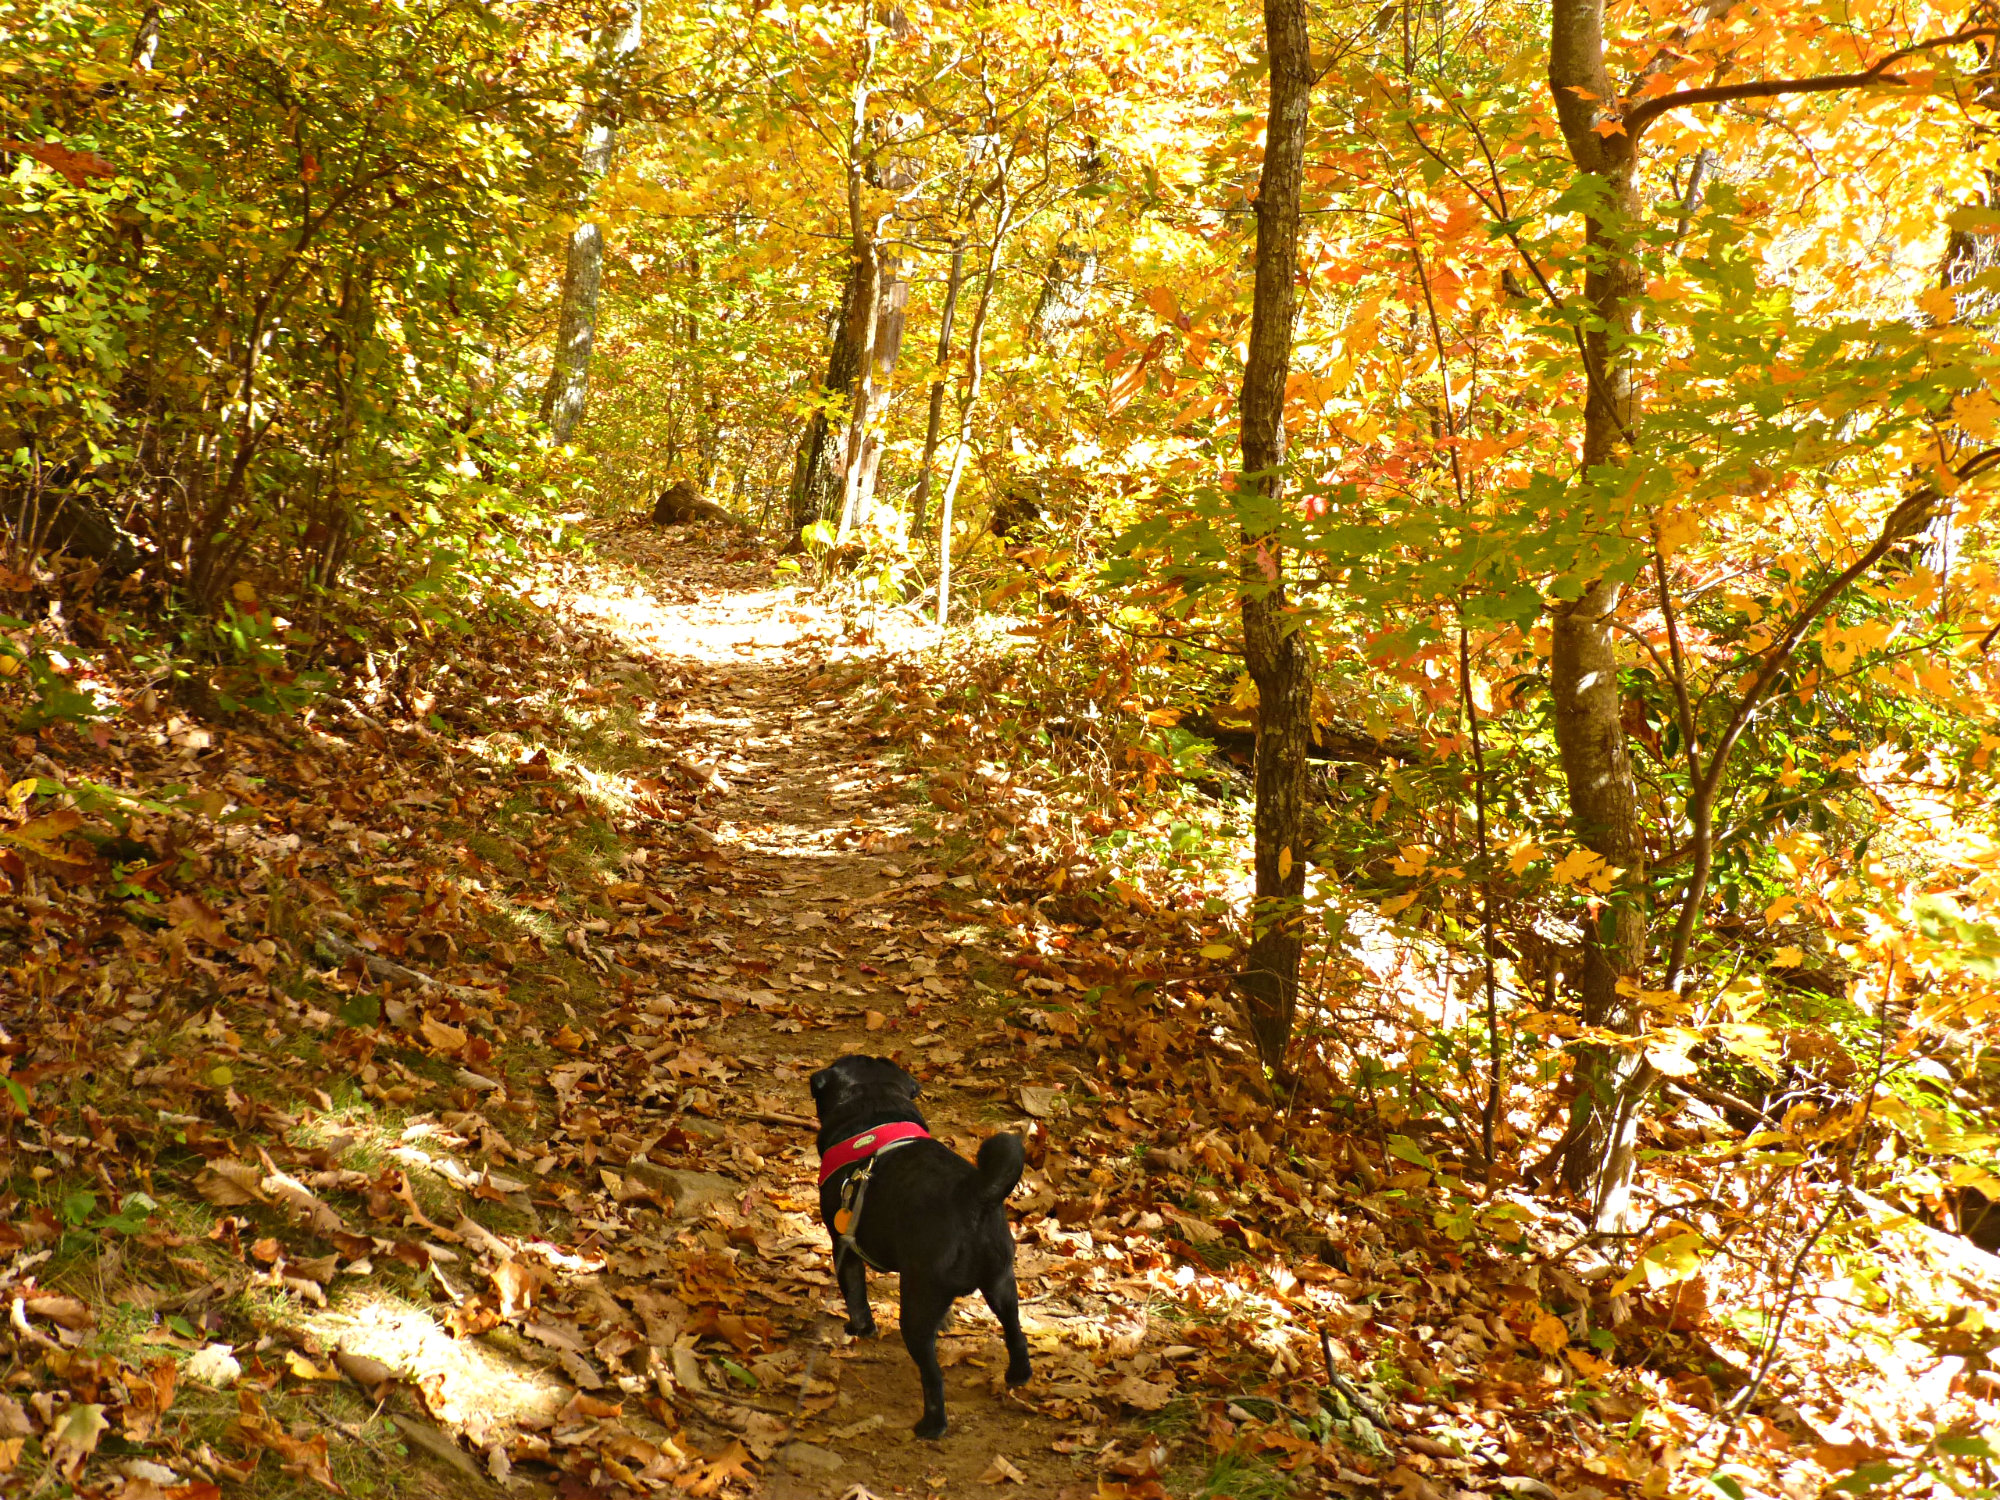 Adorable little dog staring down a beautiful hiking trail in the woods with full fall color